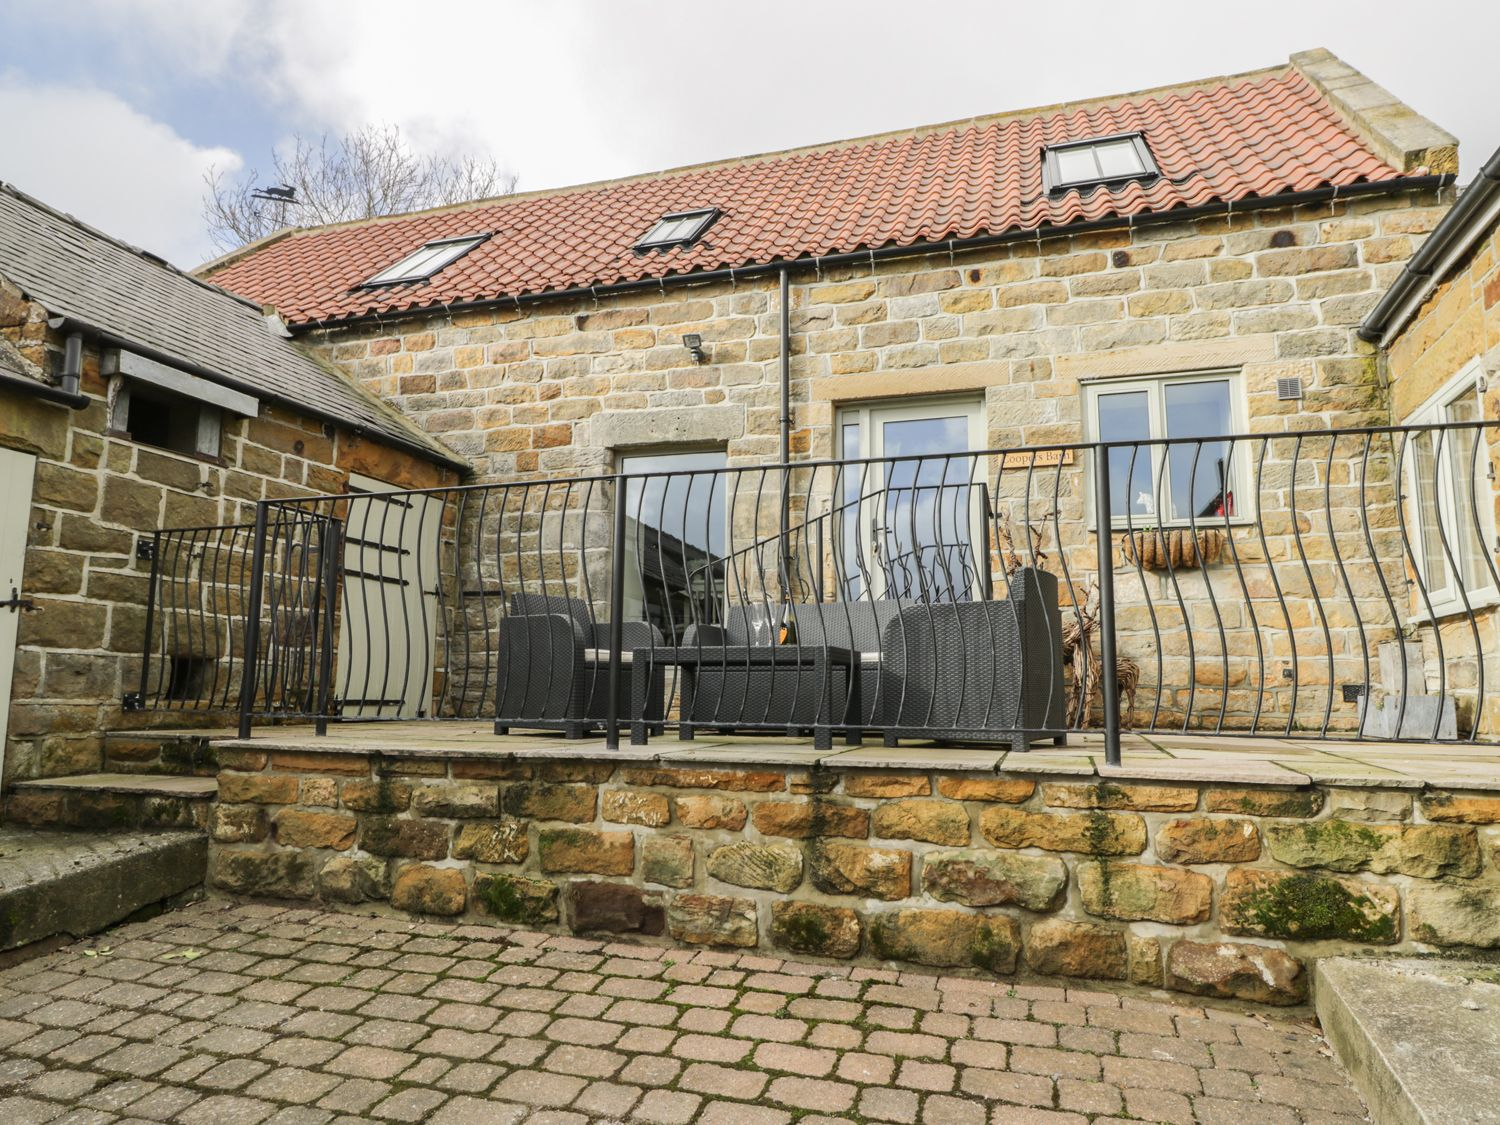 Photo of Coopers Barn ( Ref 906462 ) Aislaby holiday cottage - Self catering accommodation near Whitby North Yorkshire